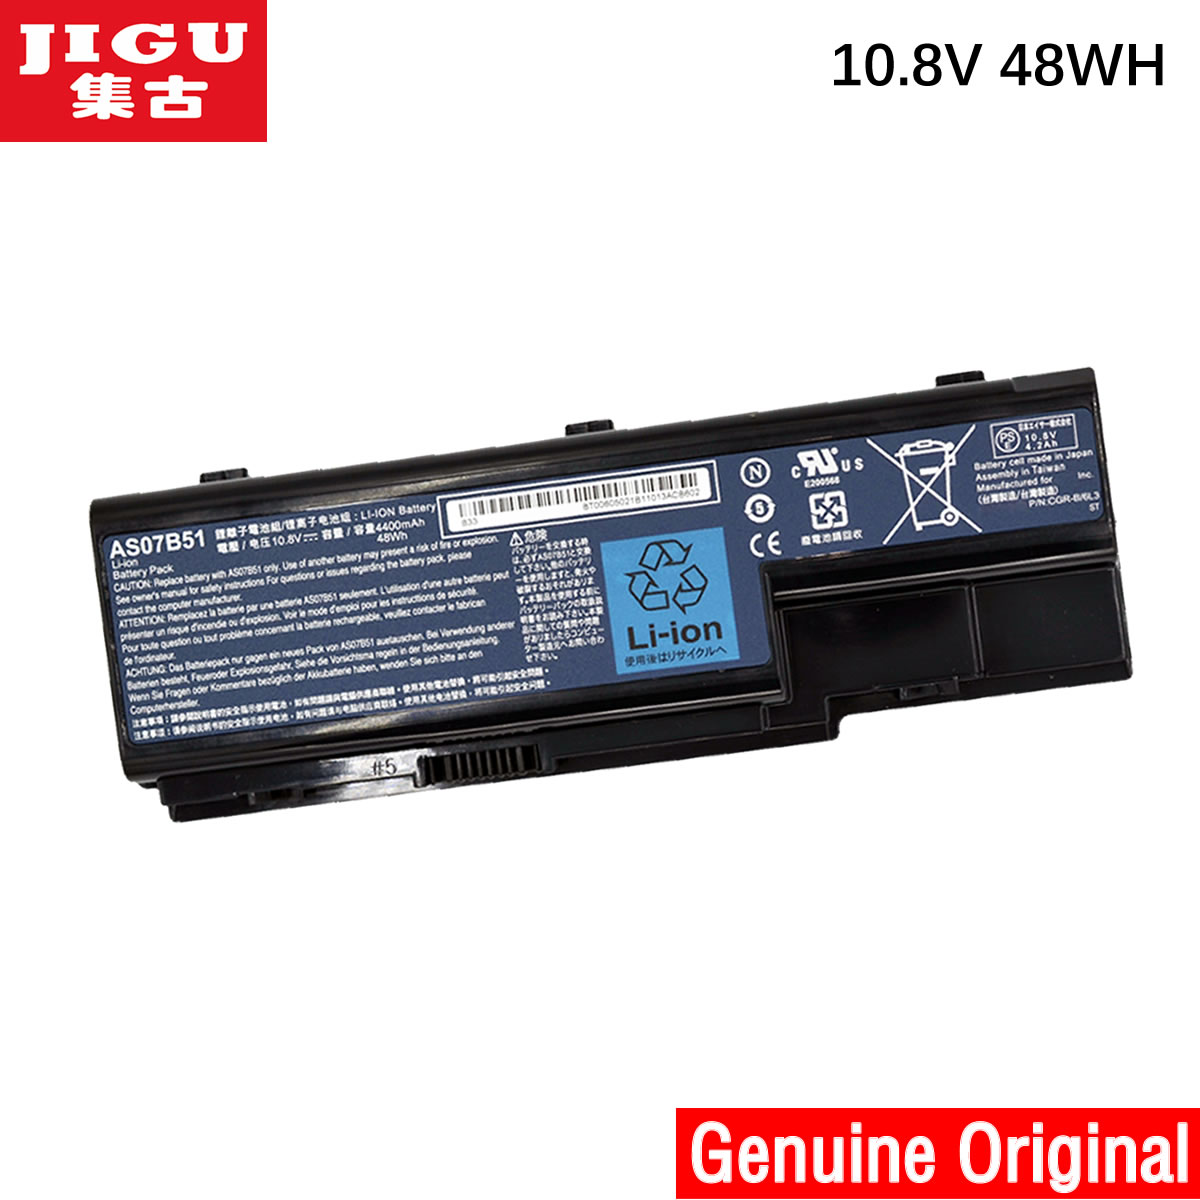 Jigu Original Laptop Battery For Acer Aspire 5710 5710g